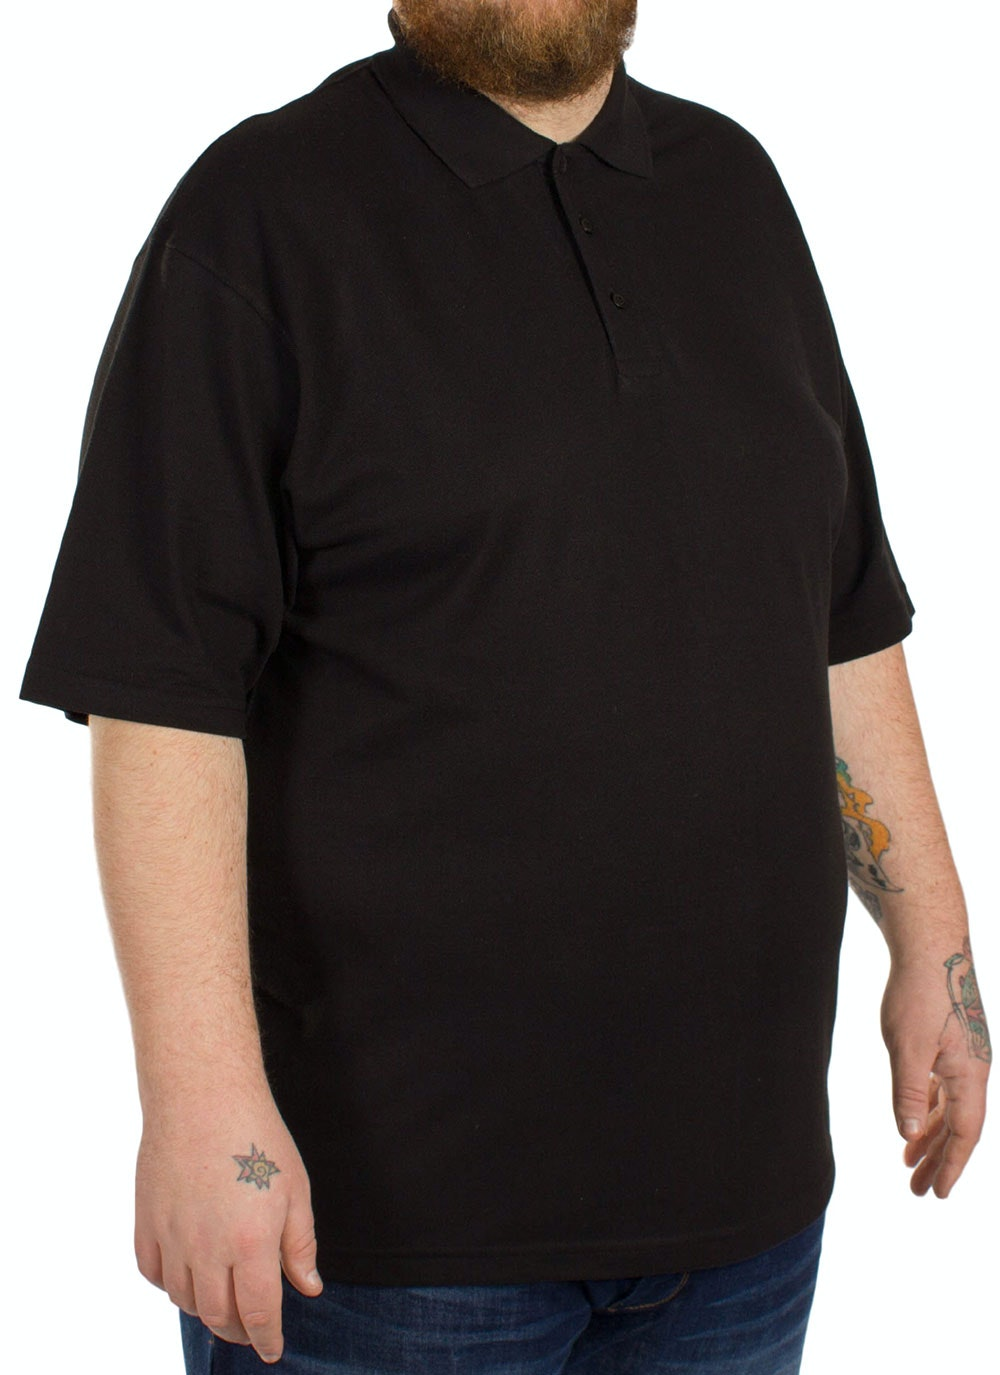 Bigdude Plain Polo Shirt - Black